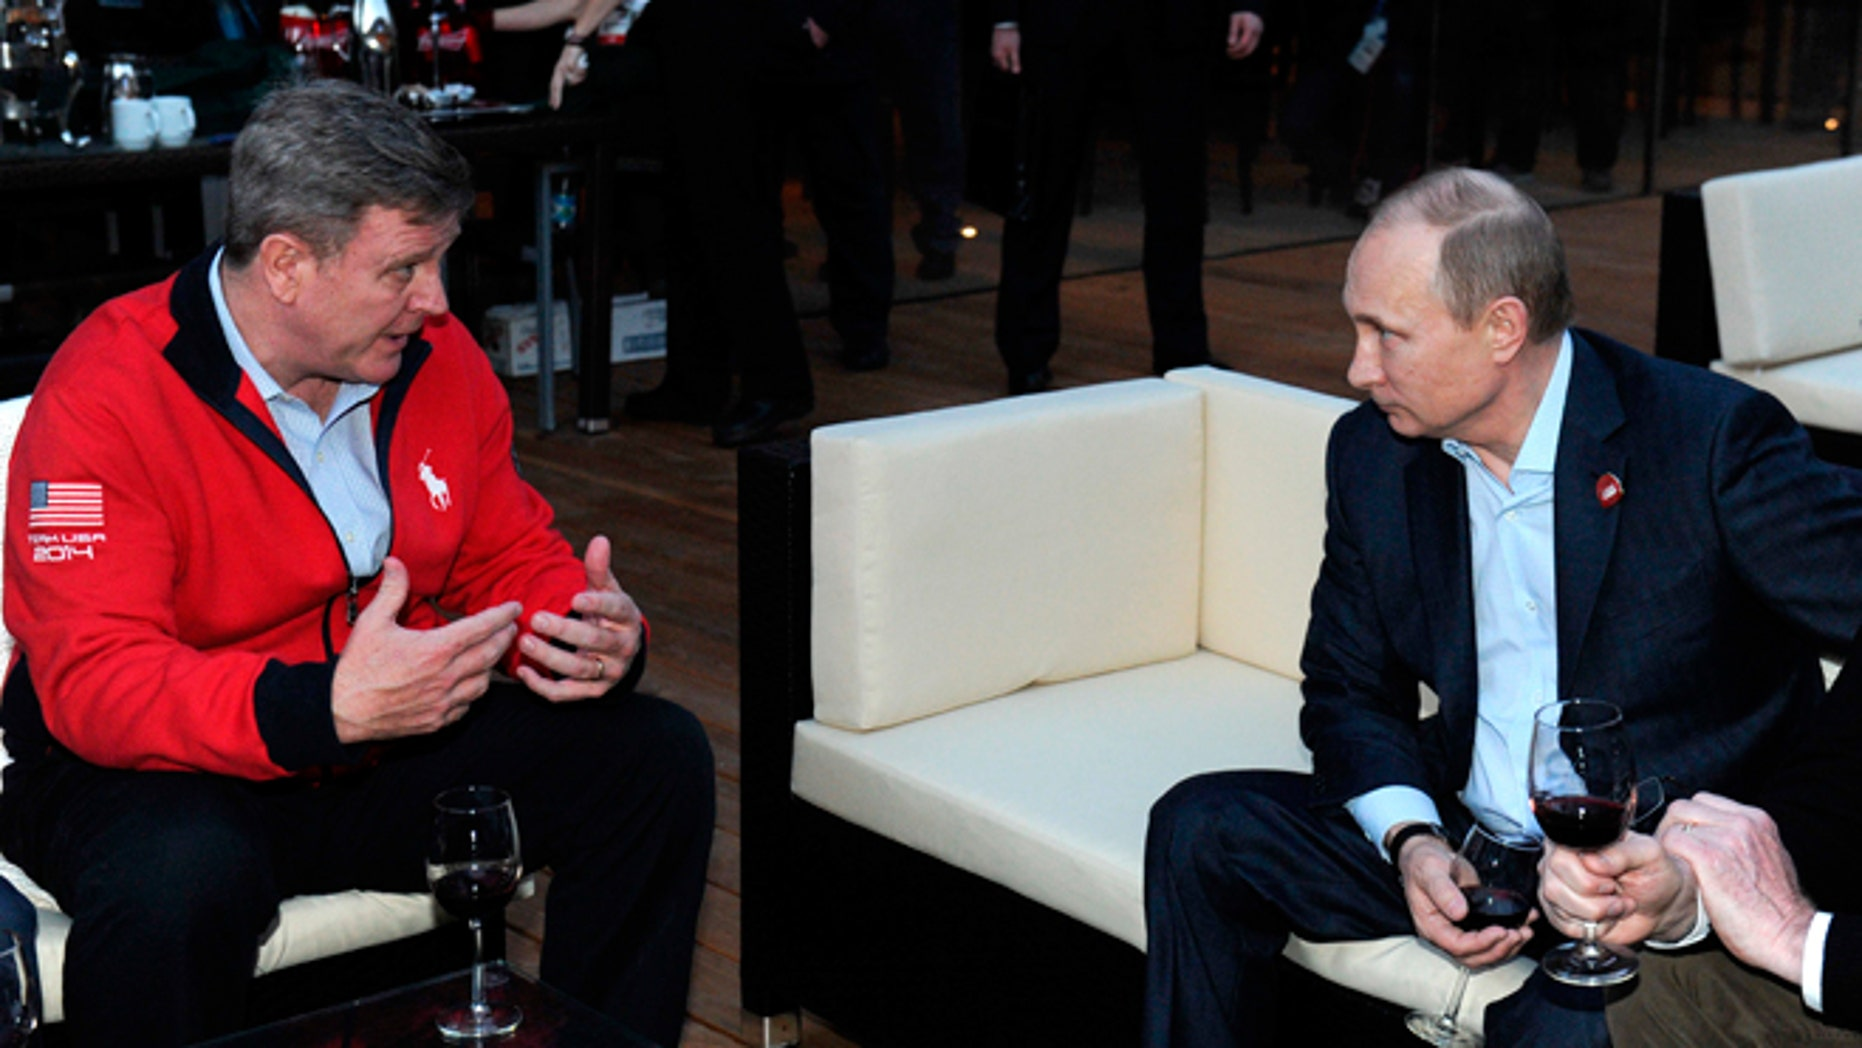 Feb. 14, 2014 : Russian President Vladimir Putin, right, speaks with Head of the United States National Olympic Committee Scott Blackmun while visiting USA House during the 2014 Winter Olympics in Sochi, Russia.